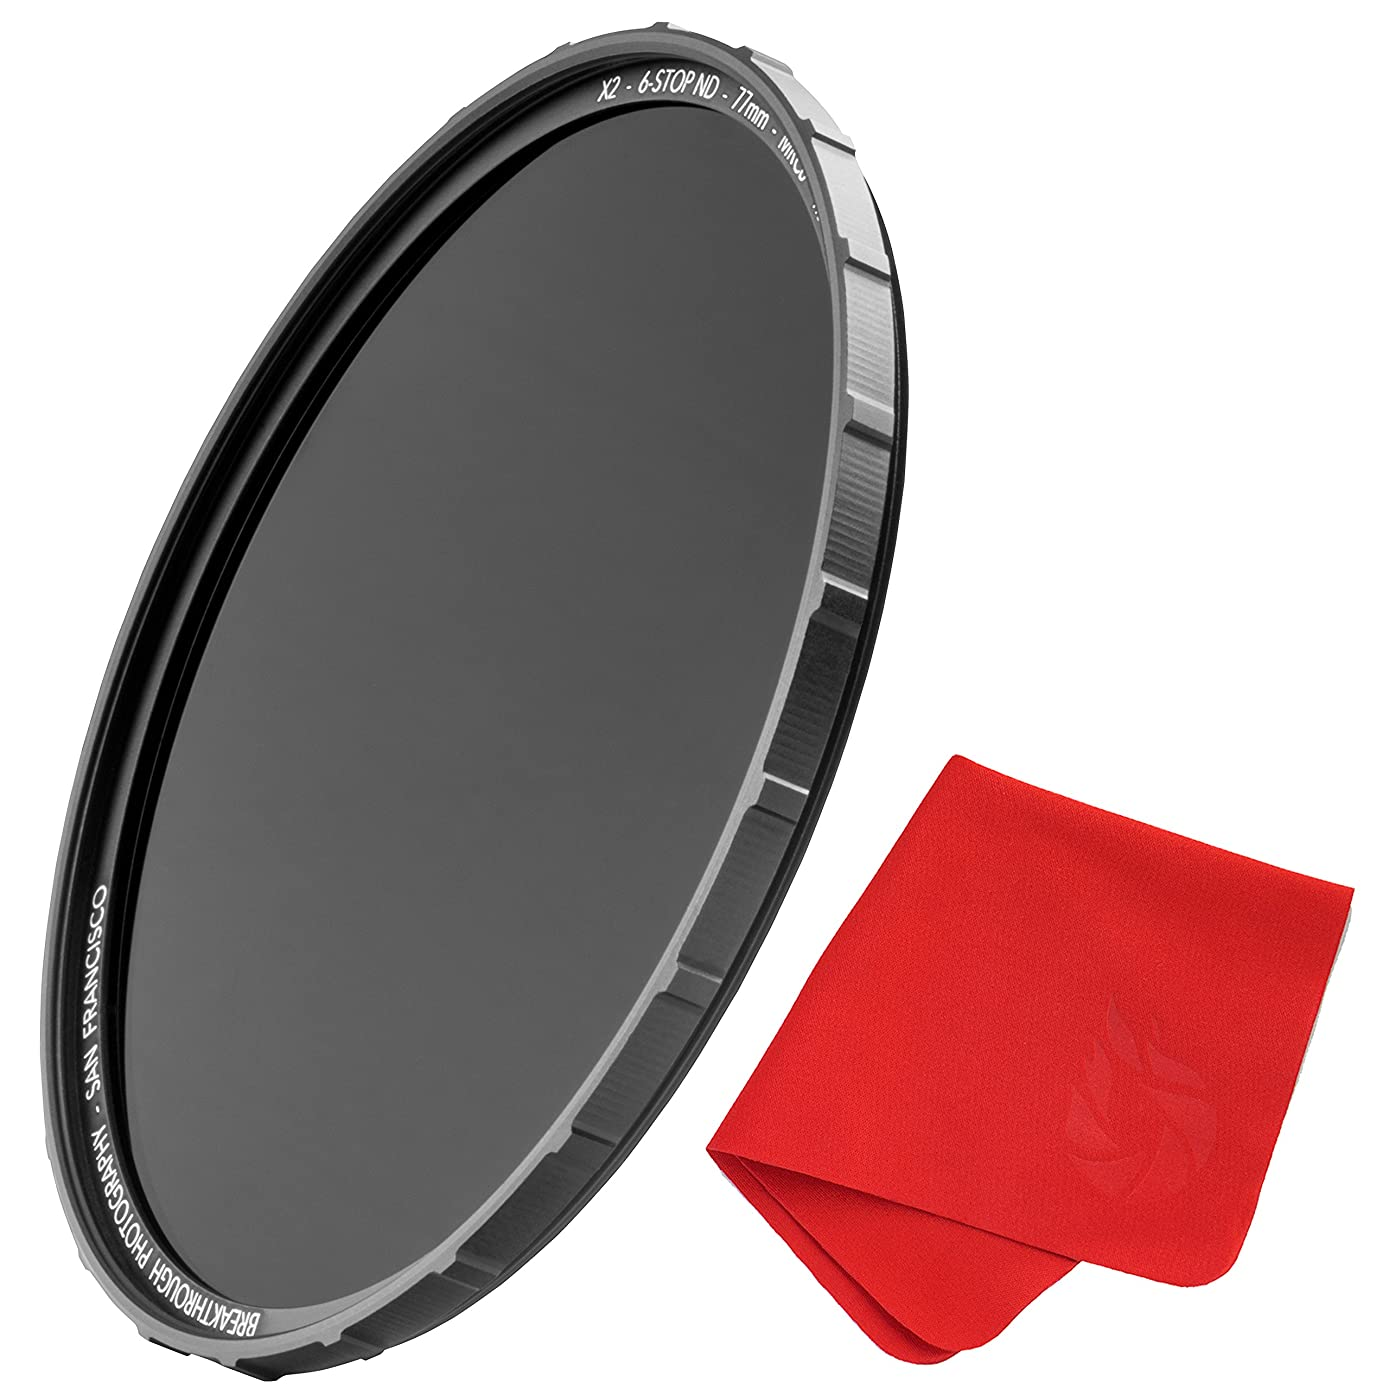 72mm X2 3-Stop ND Filter for Camera Lenses - Neutral Density Professional Photography Filter with Lens Cloth - MRC8, Nanotec, Ultra-Slim, Weather-Sealed by Breakthrough Photography